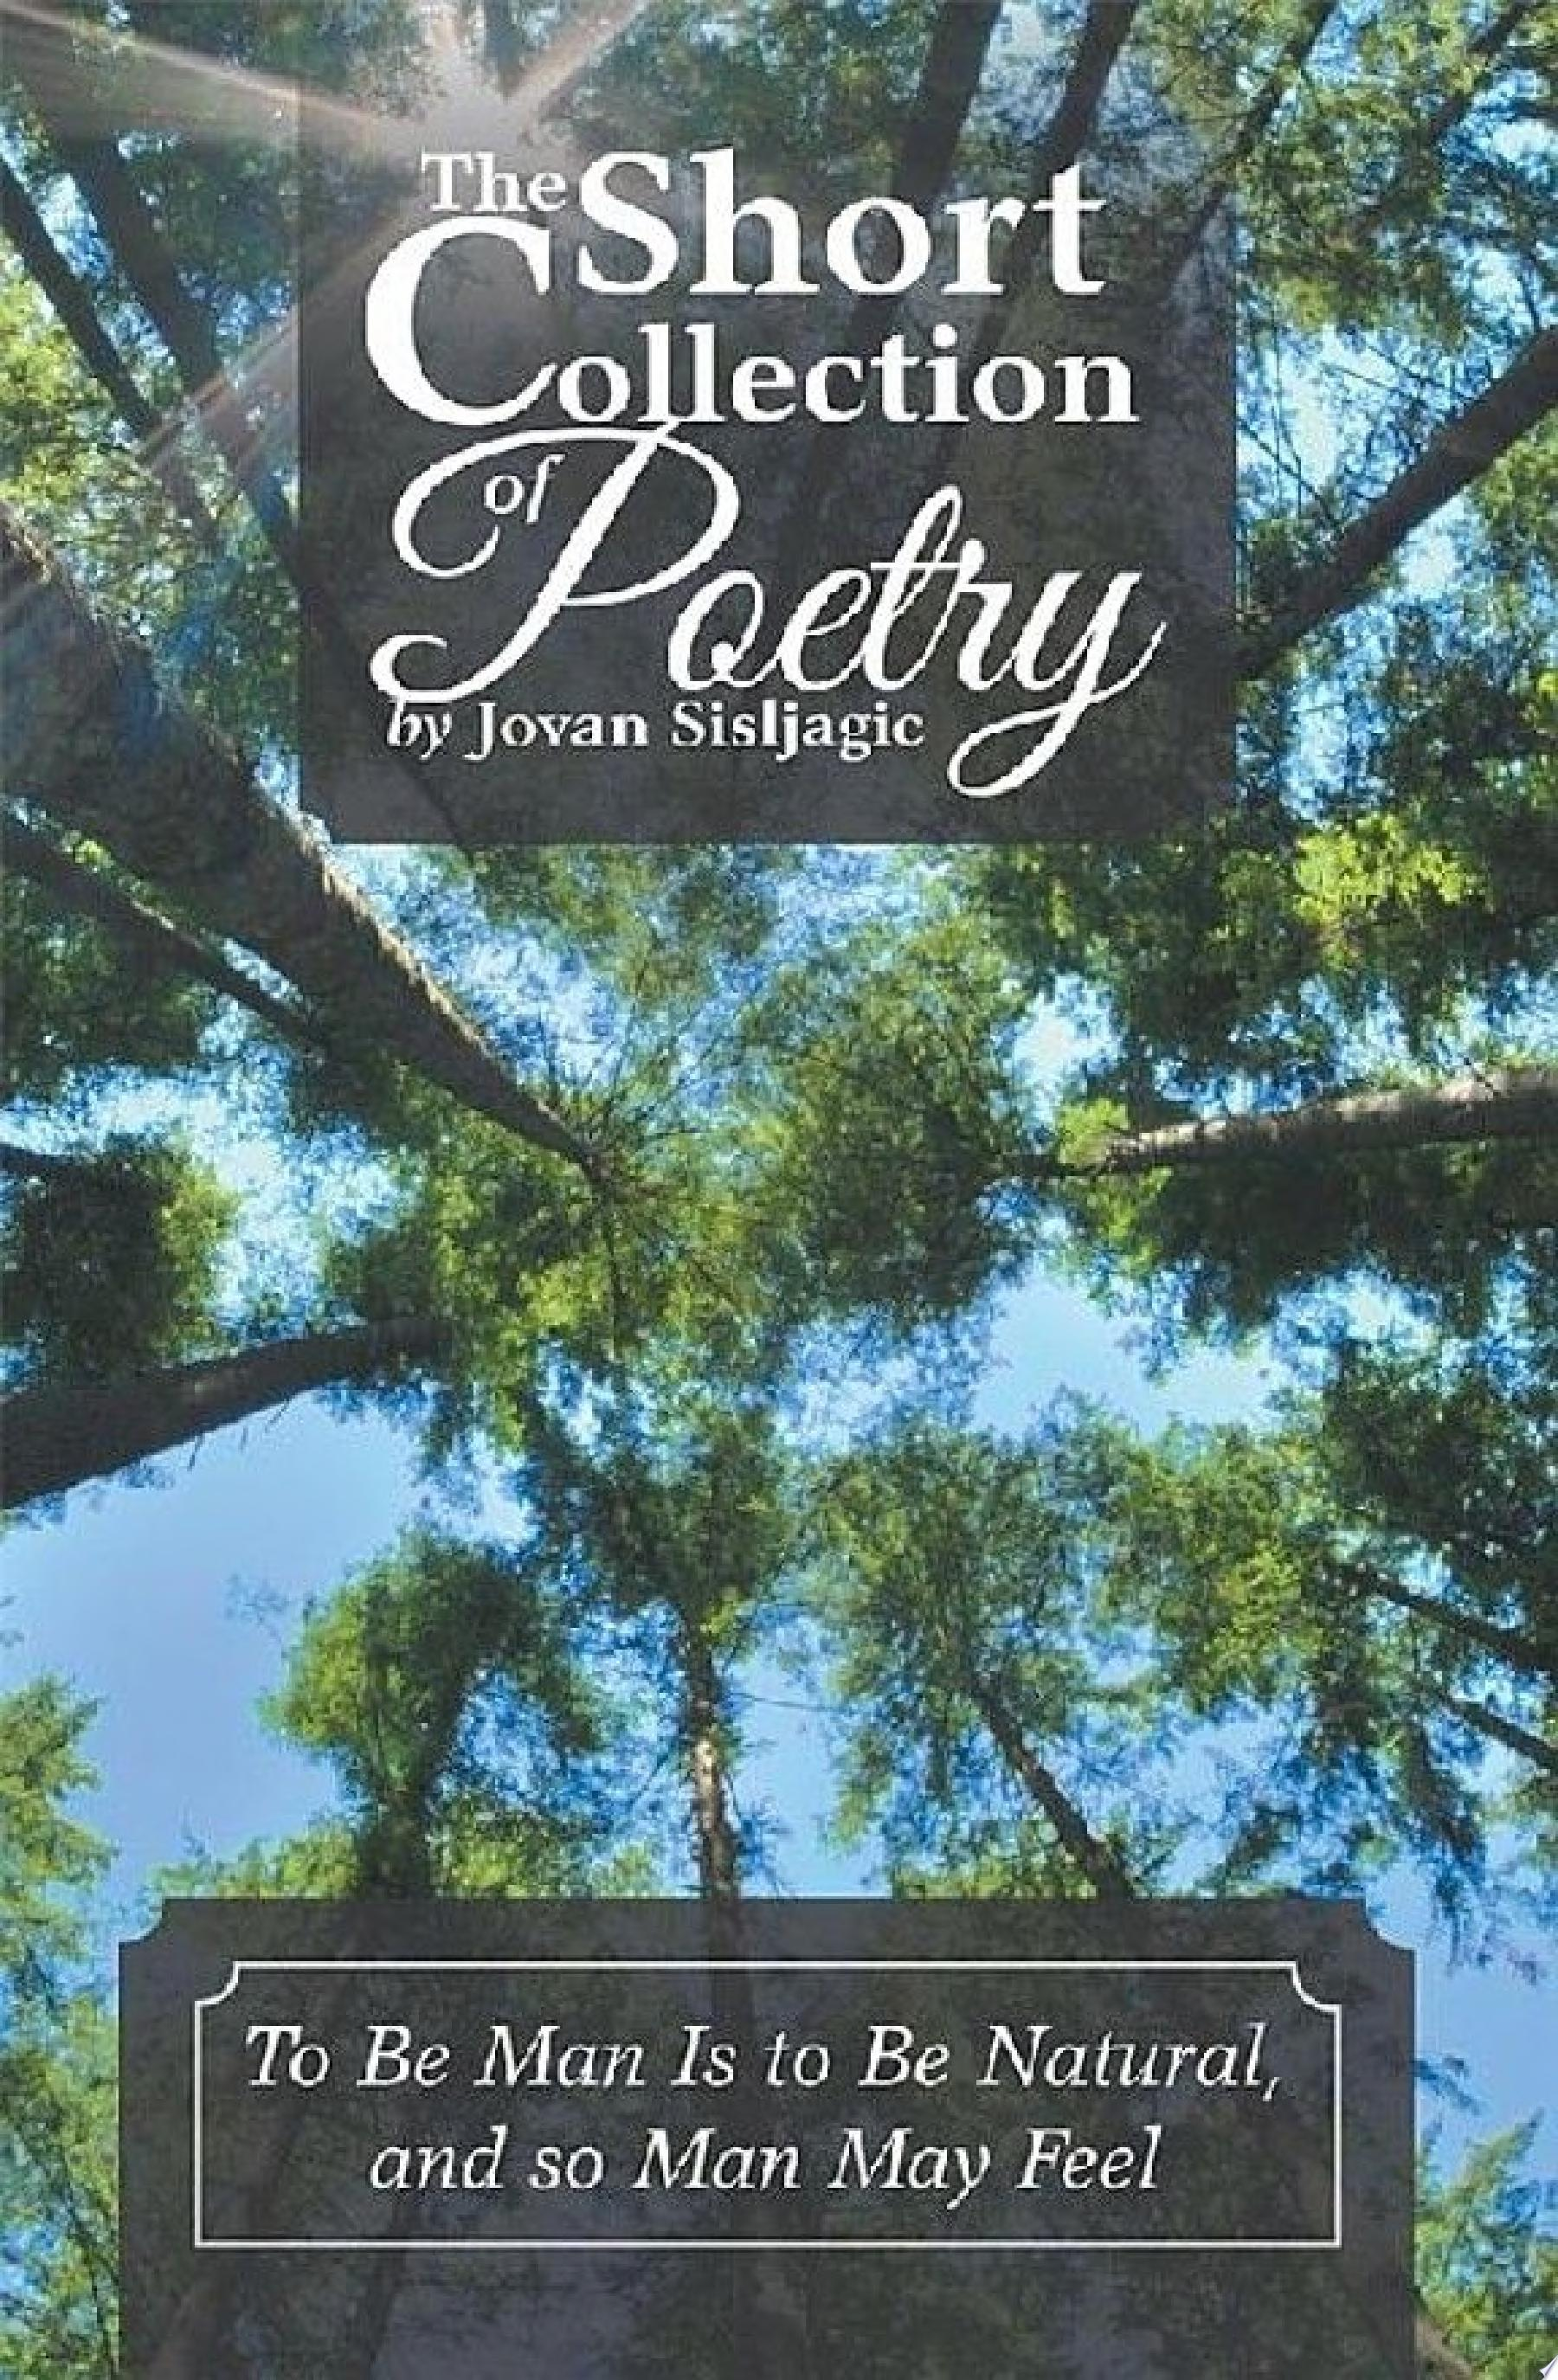 The Short Collection of Poetry by Jovan Sisljagic